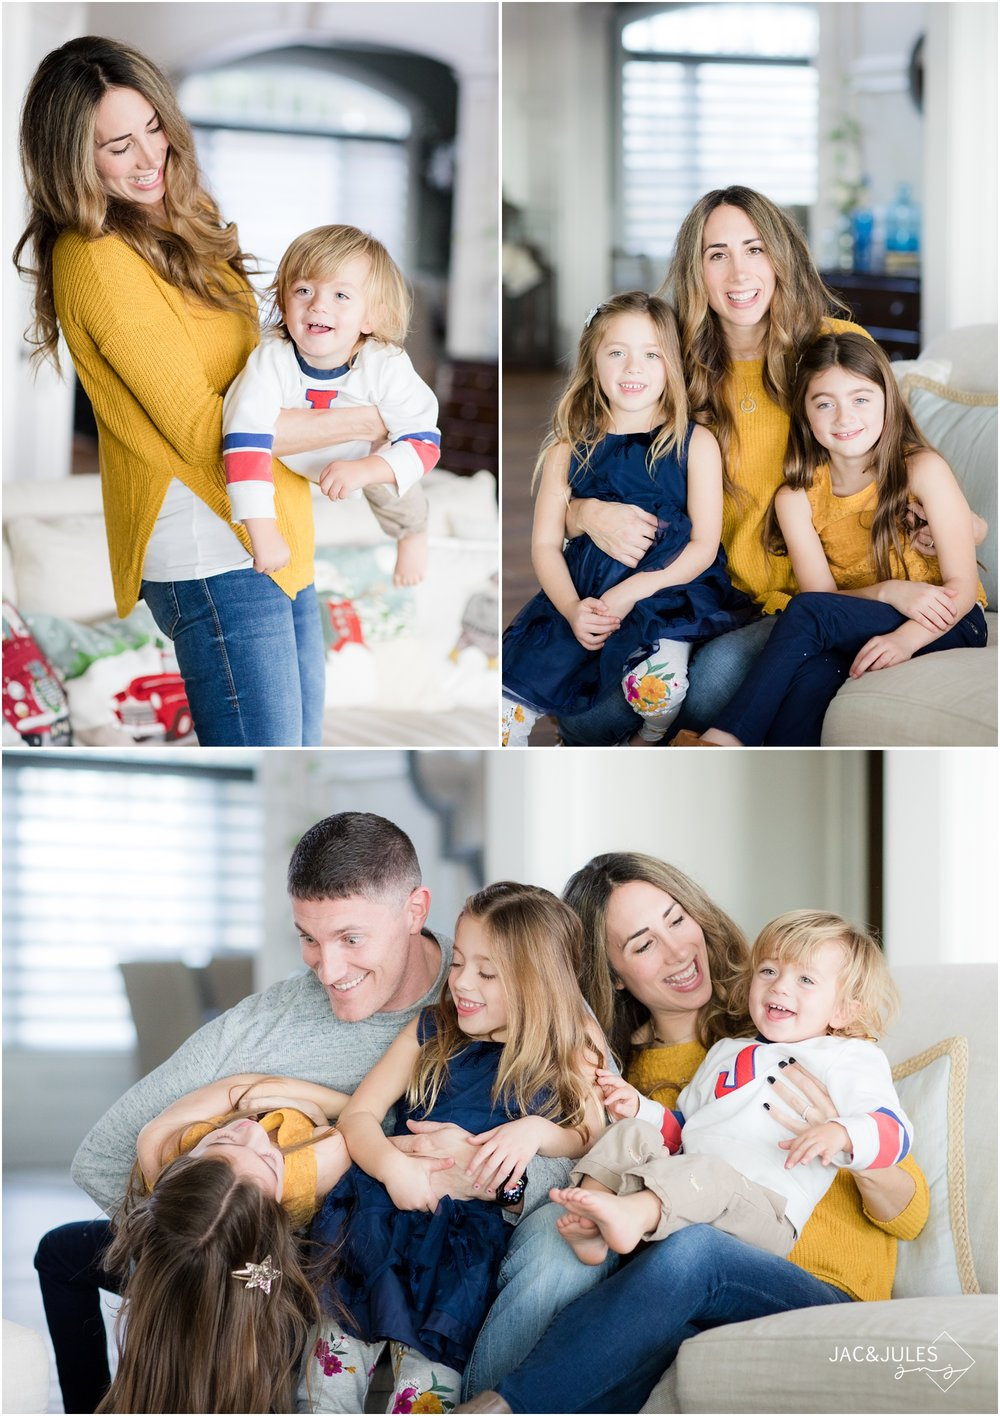 fun photos of a family on their couch at home in Toms River, NJ.